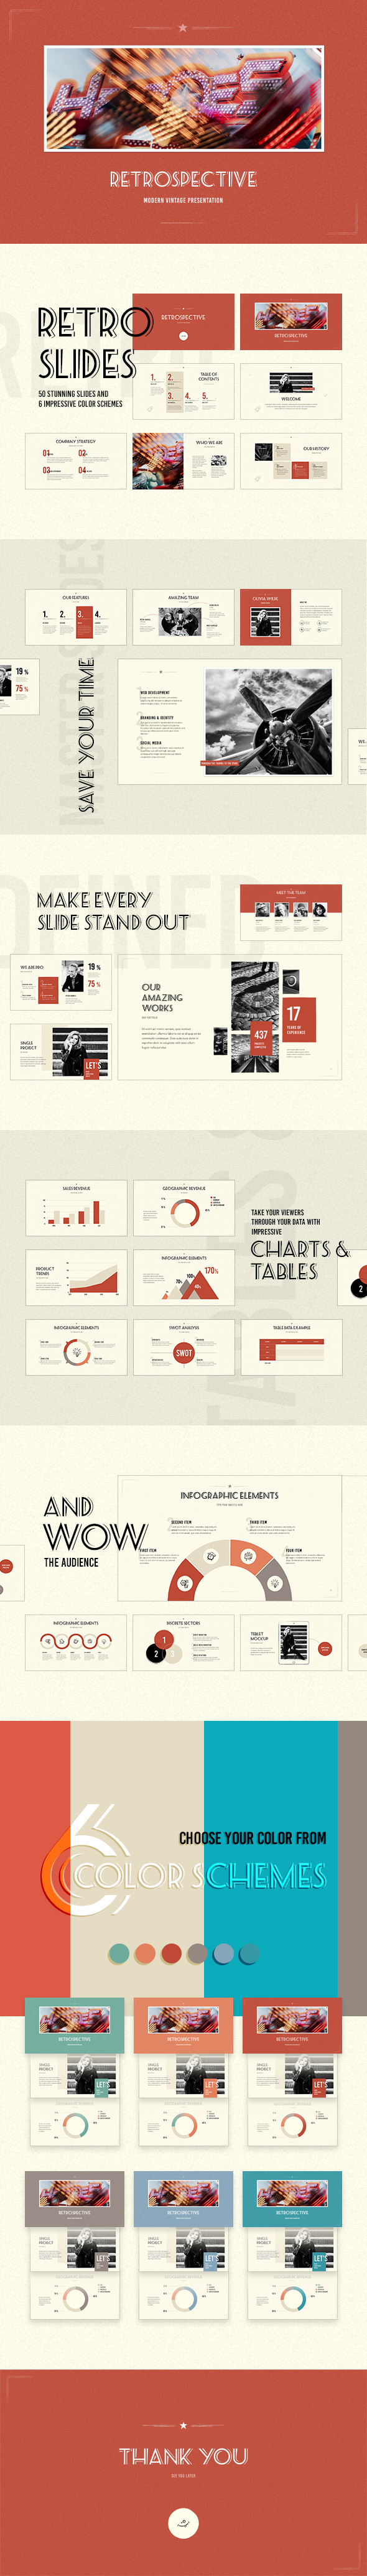 Retrospective PowerPoint Template - Creative PowerPoint Templates